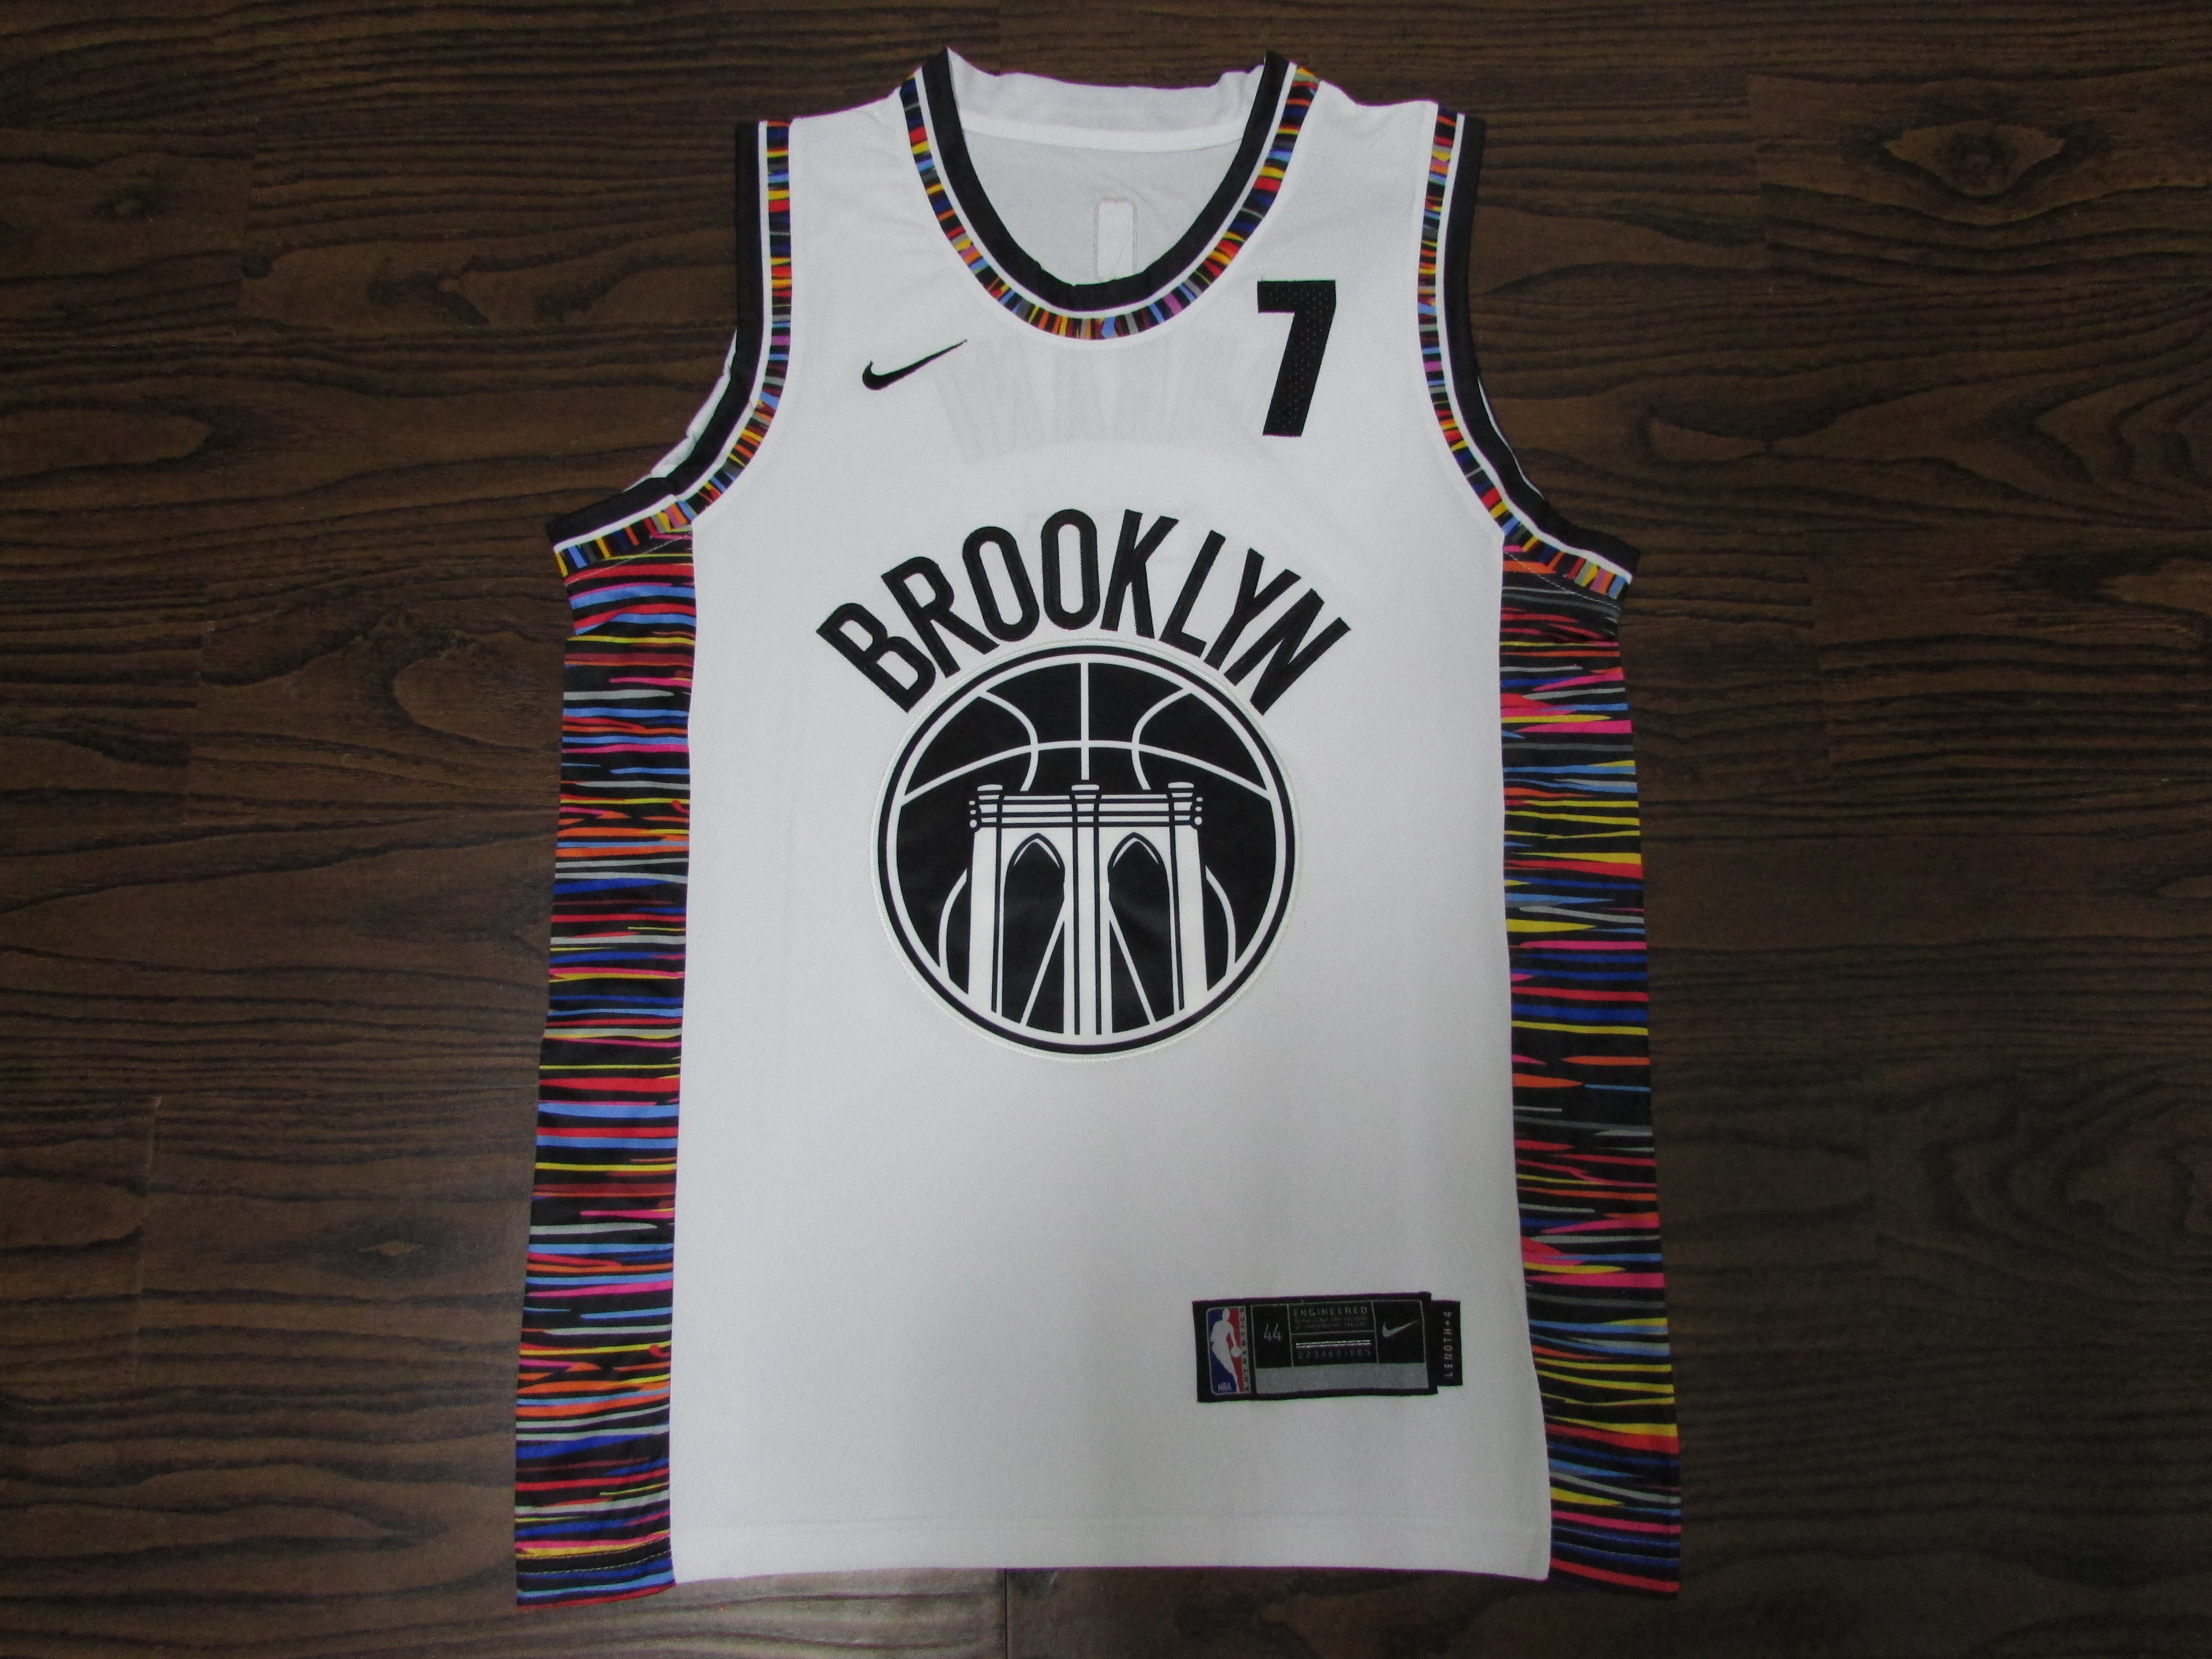 20/21 New Men Nets 7 white city edition basketball jersey ...